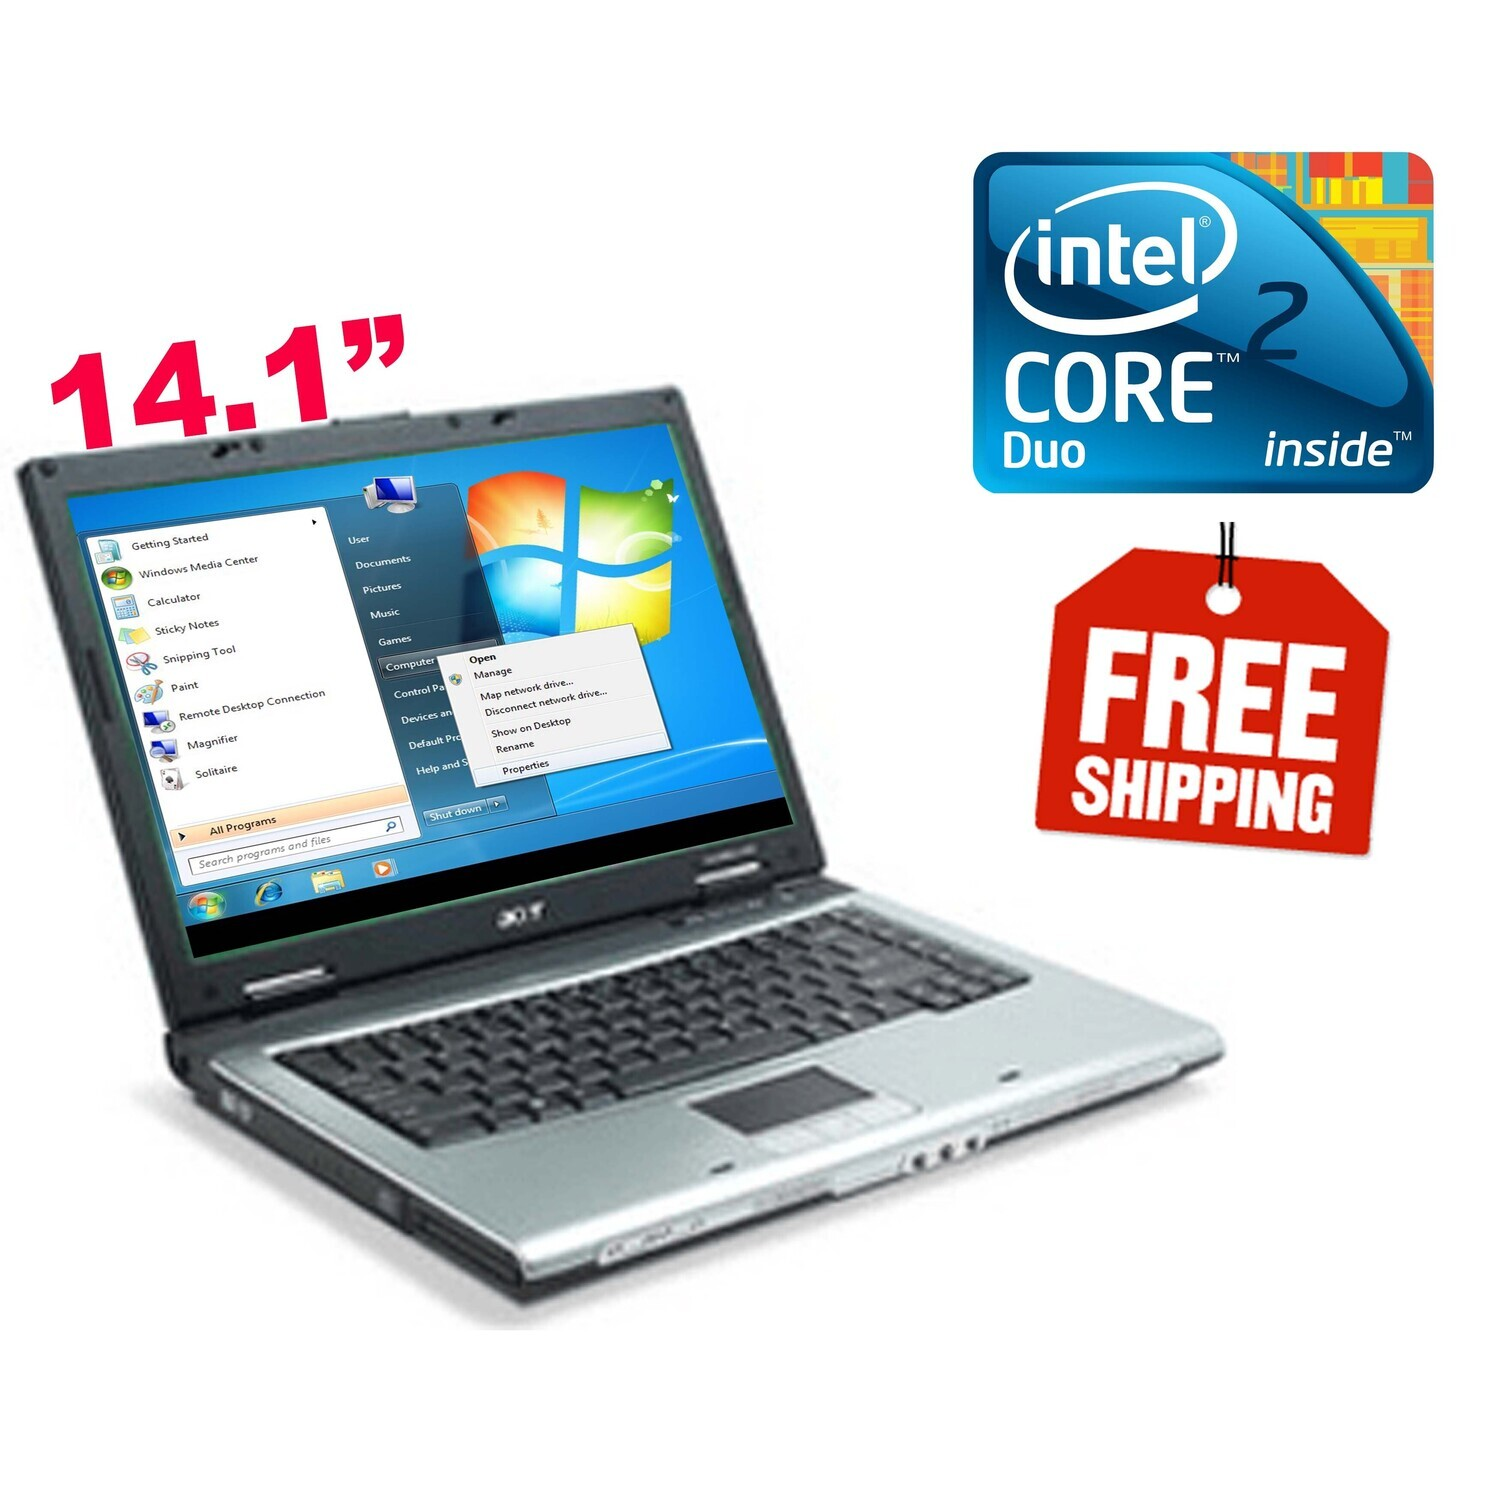 """Acer Travelmate 3230 C2D 1.73GHz 2GB 60GB-14.1"""" HD Graphics Laptop Win7"""